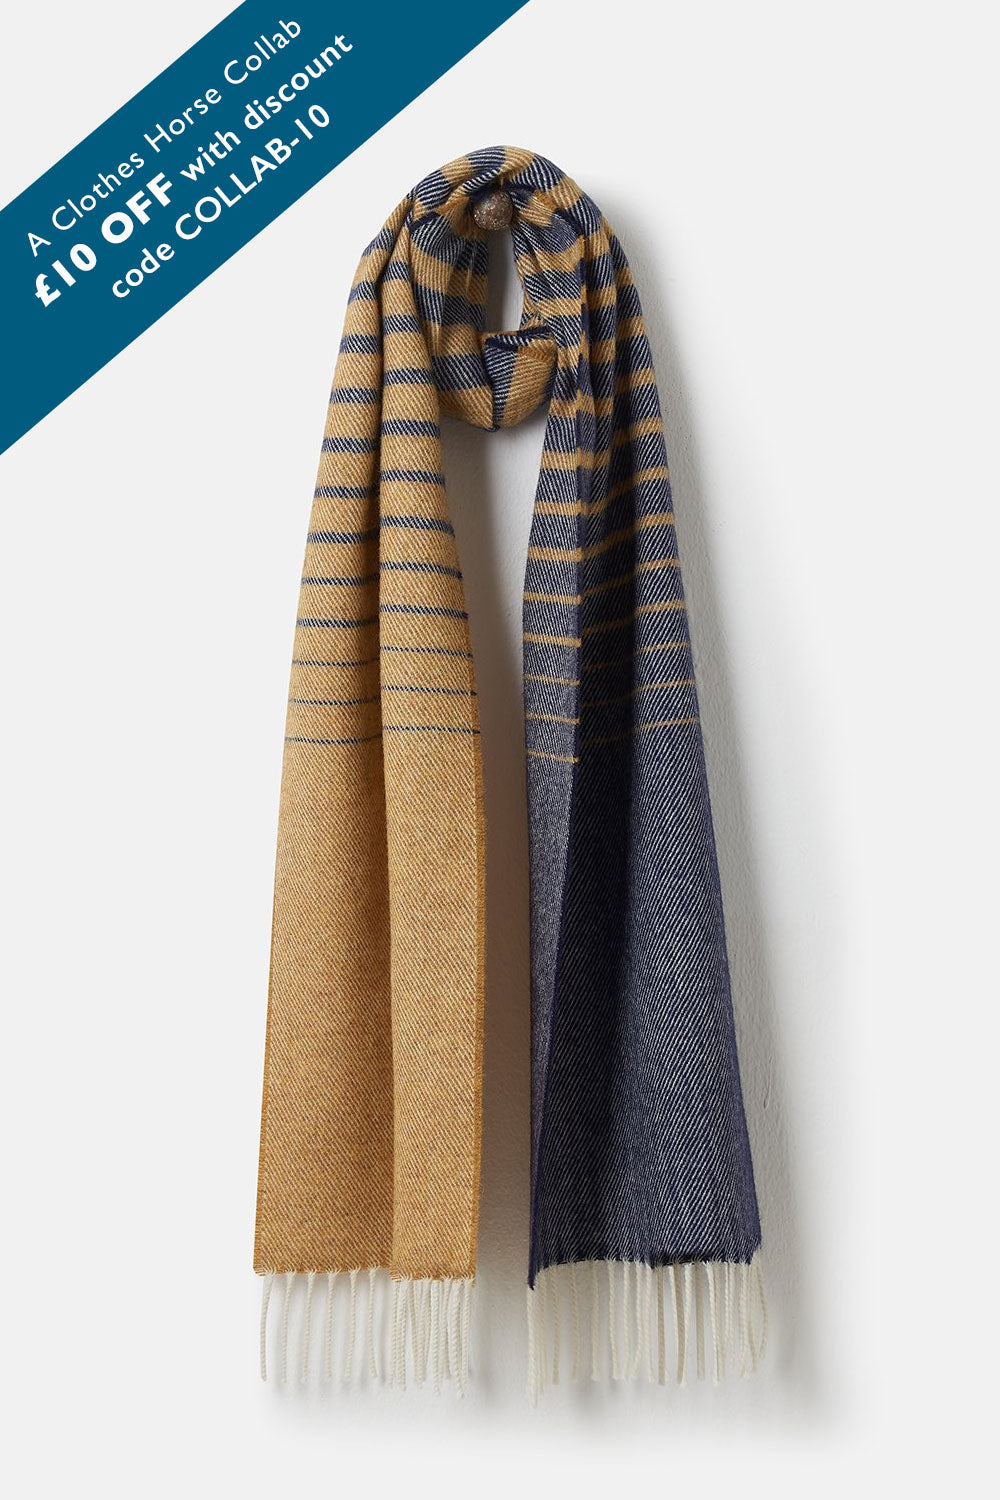 Merino Scarf - Sunrise Night Sky Stripe